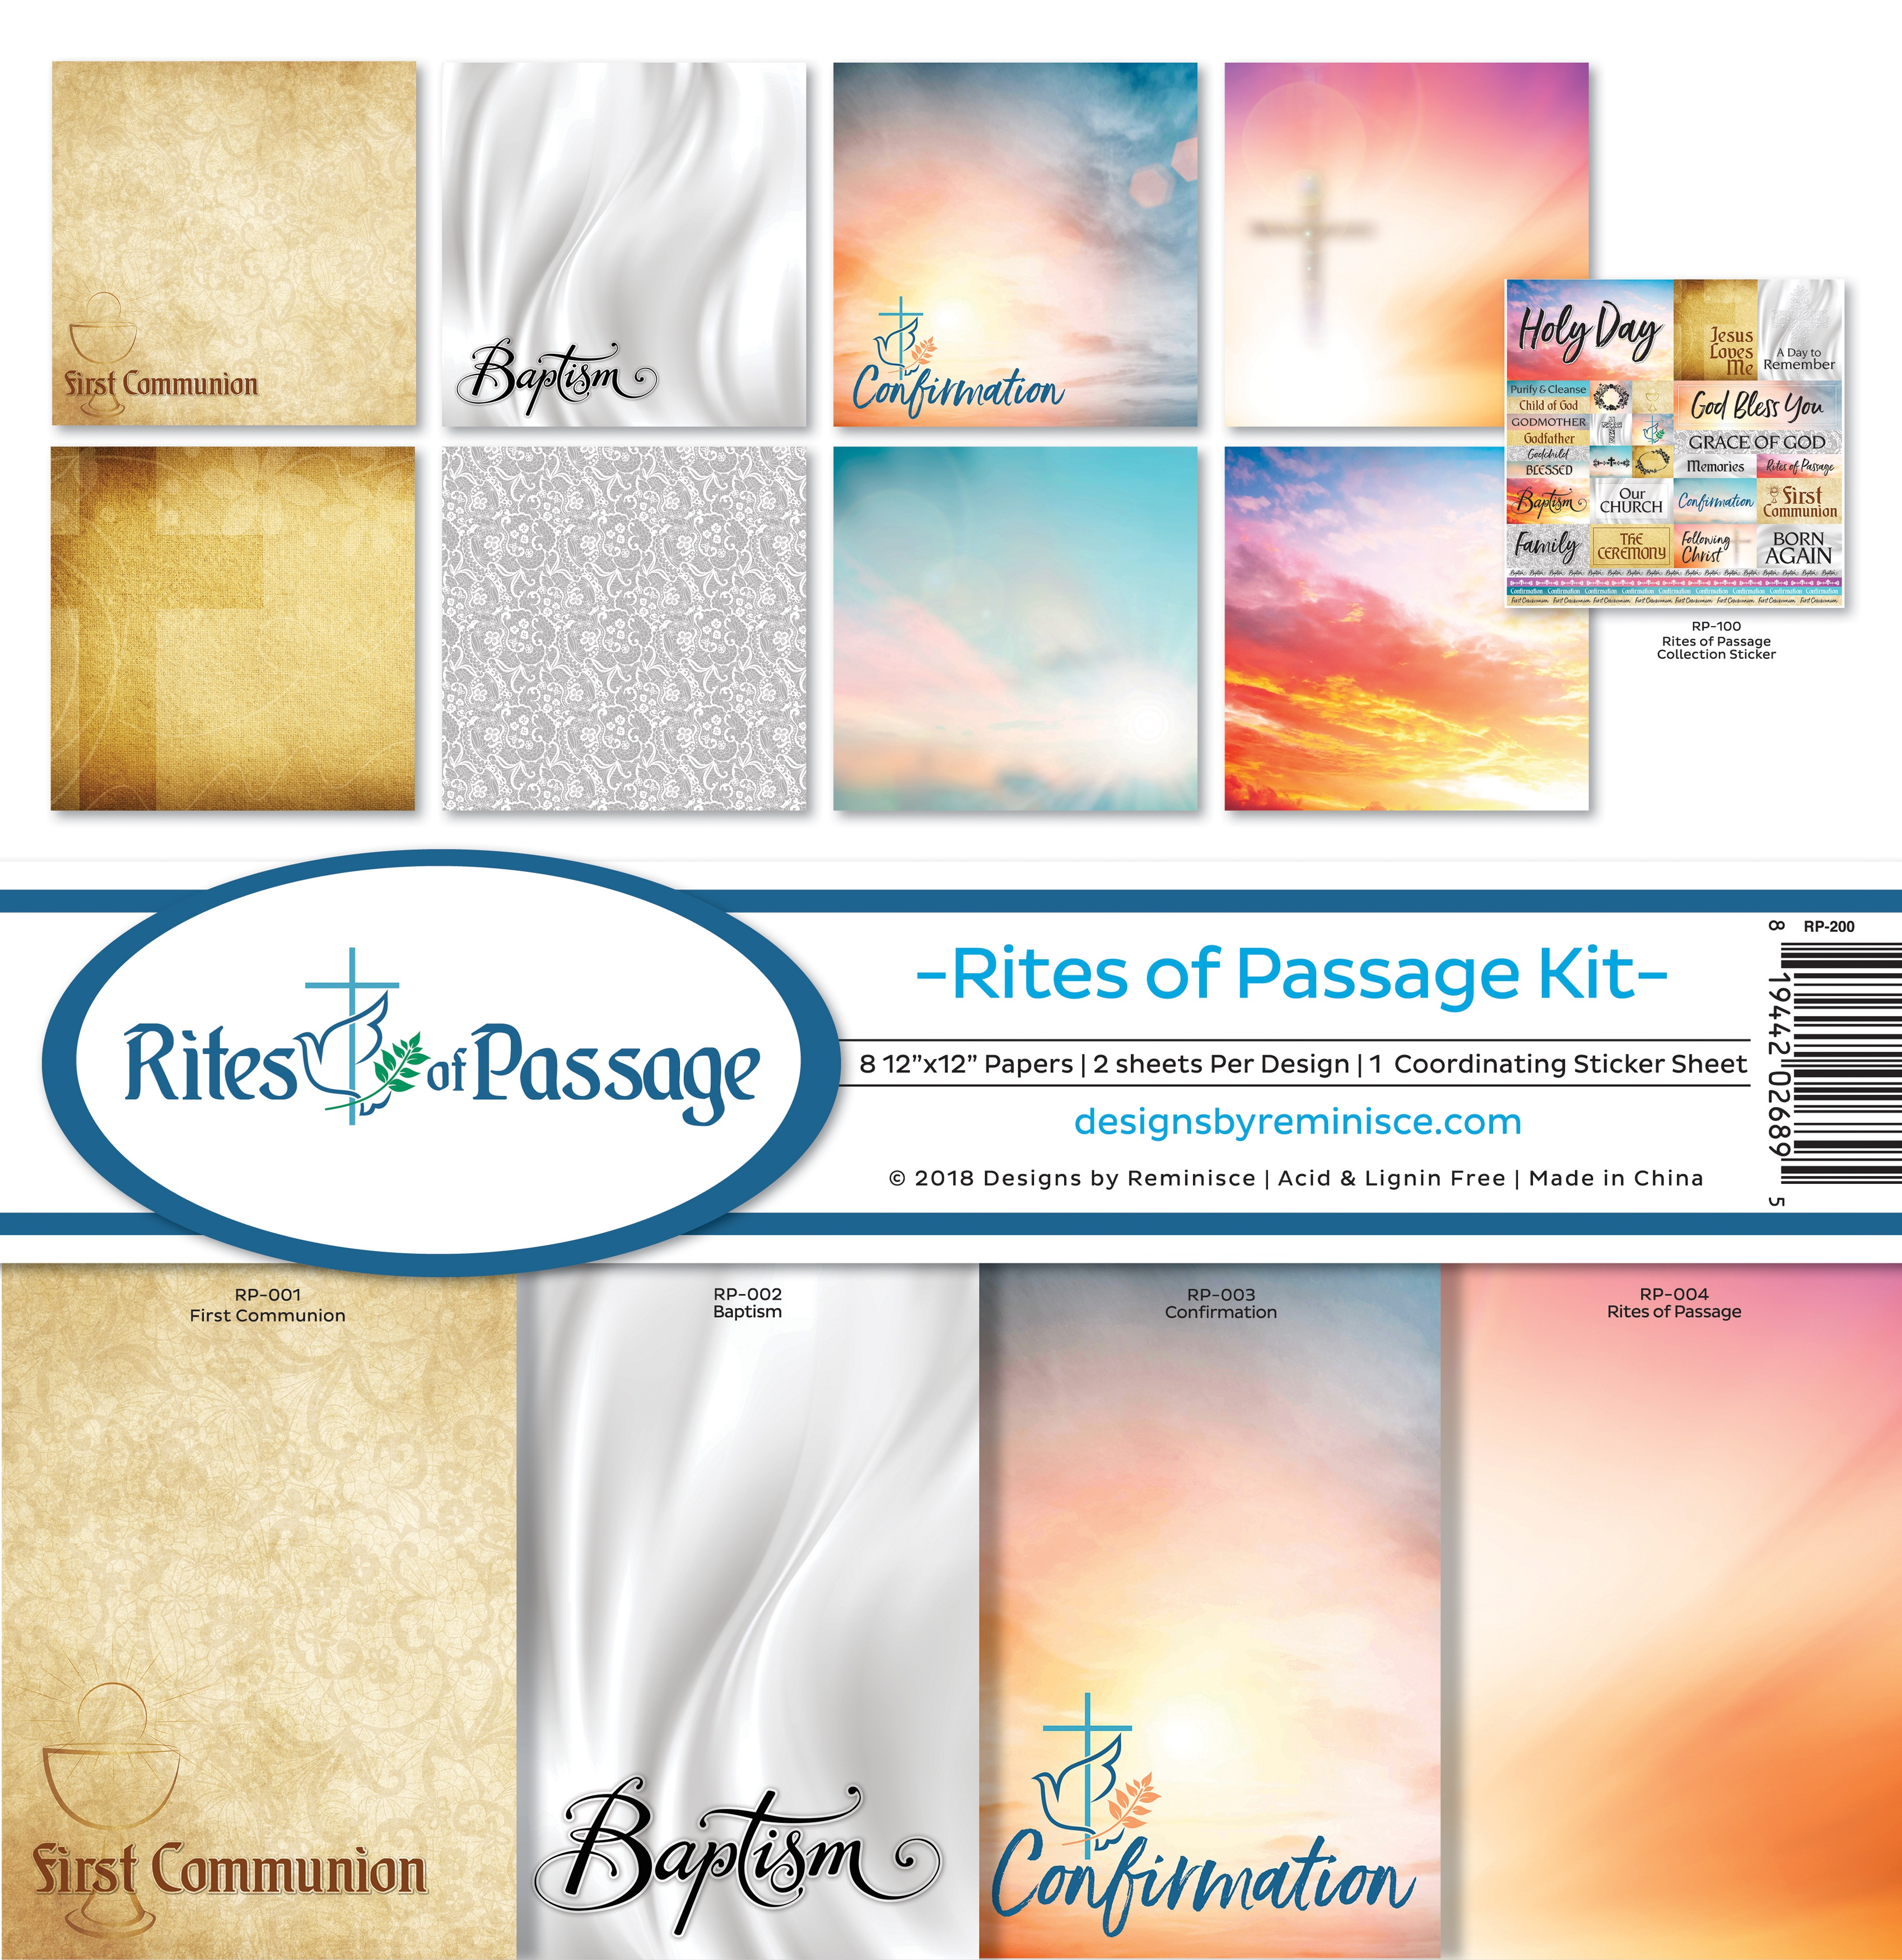 Reminisce Collection Kit 12'x12' - Rites Of Passage